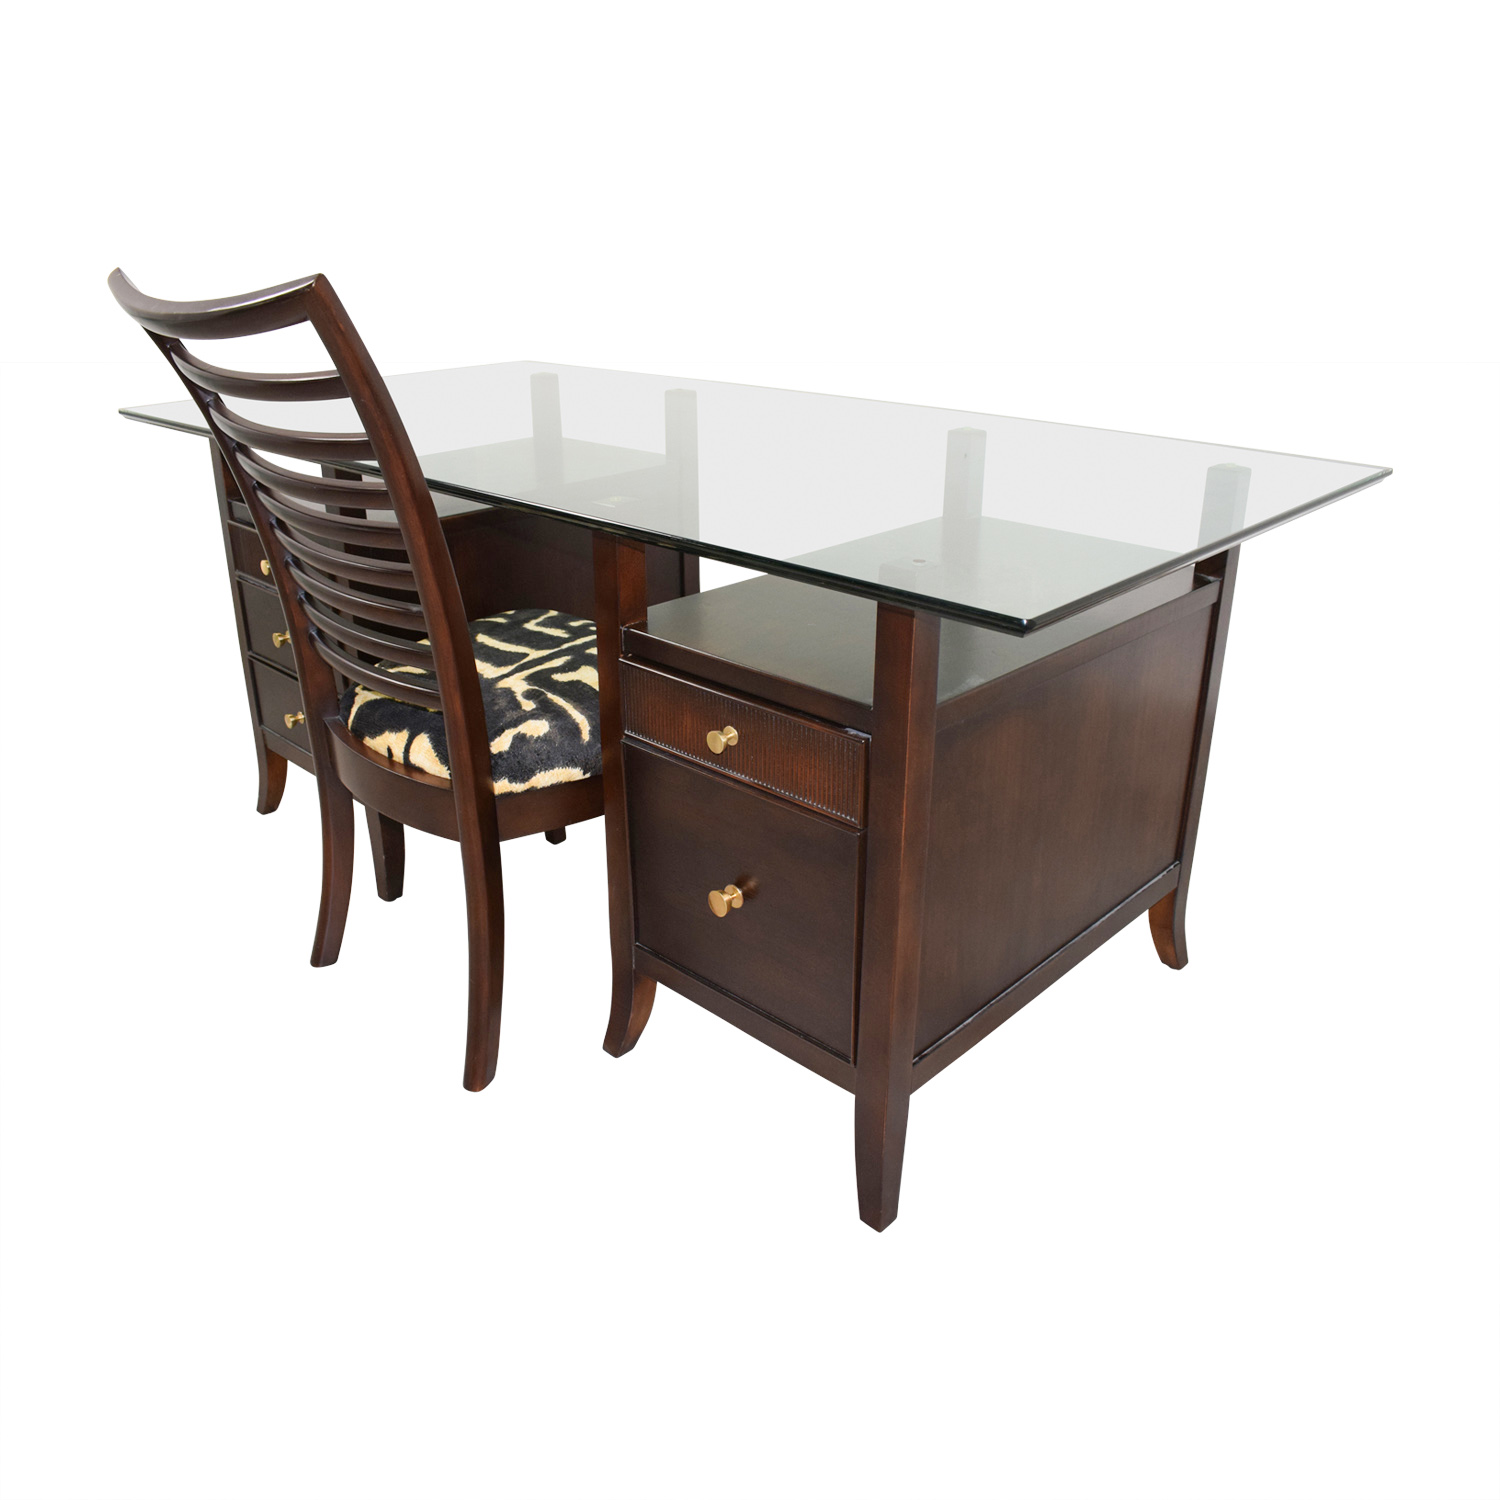 Stanley Furniture Stanley Furniture Midtown Glass Top Five-Drawer Desk with Chair